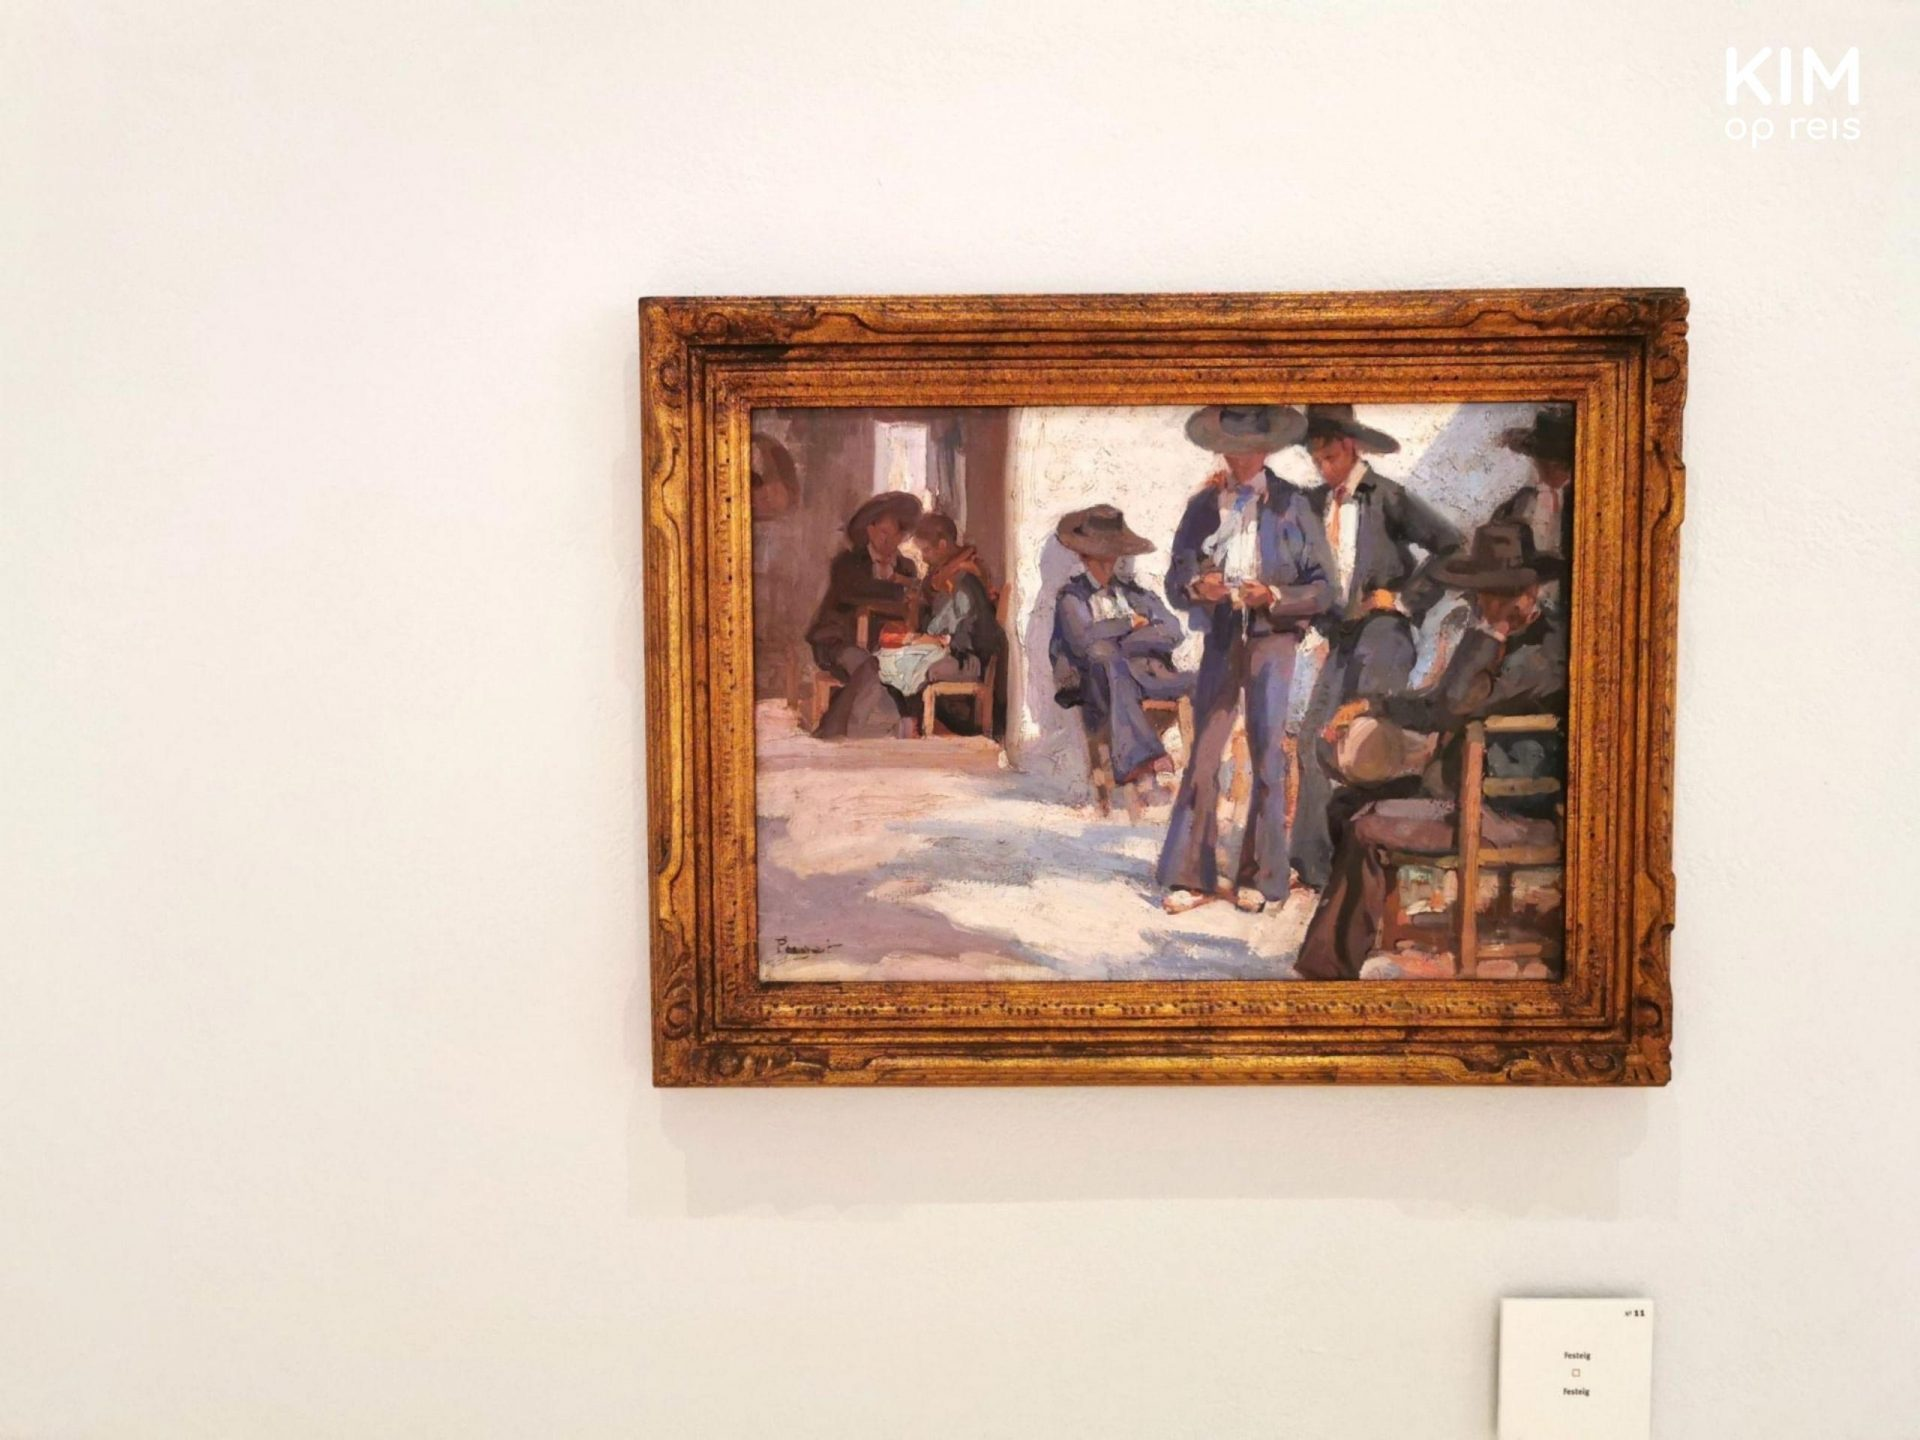 Art in Museum Puget - painting of some men dressed in dark suits and a hat